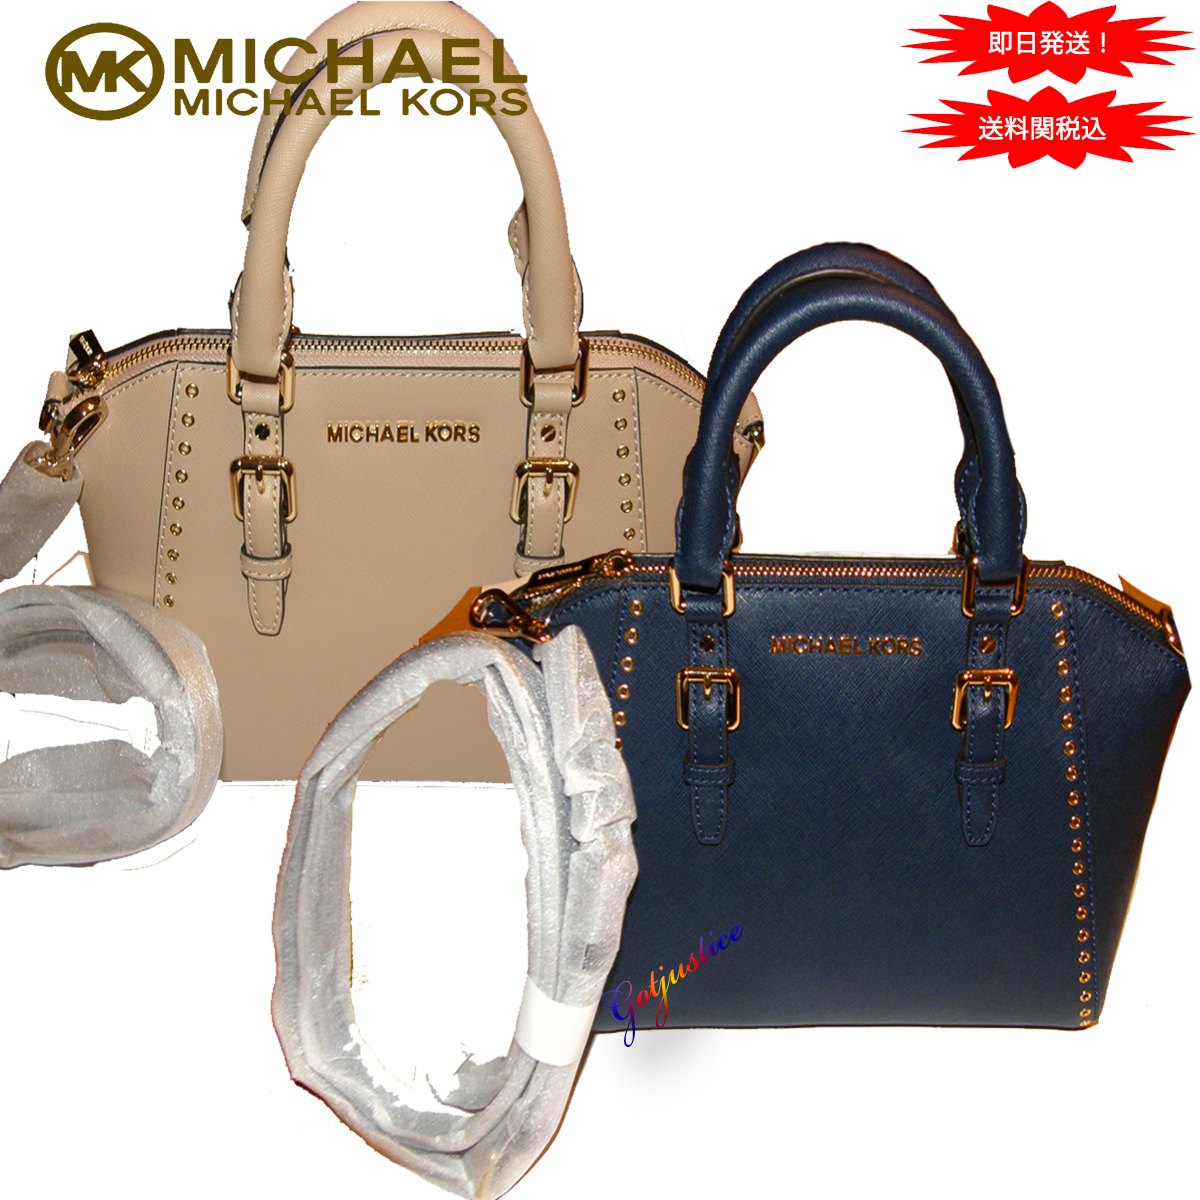 関税送料込☆MICHAEL KORS 12月最新作 CIARA GROMMET 2way